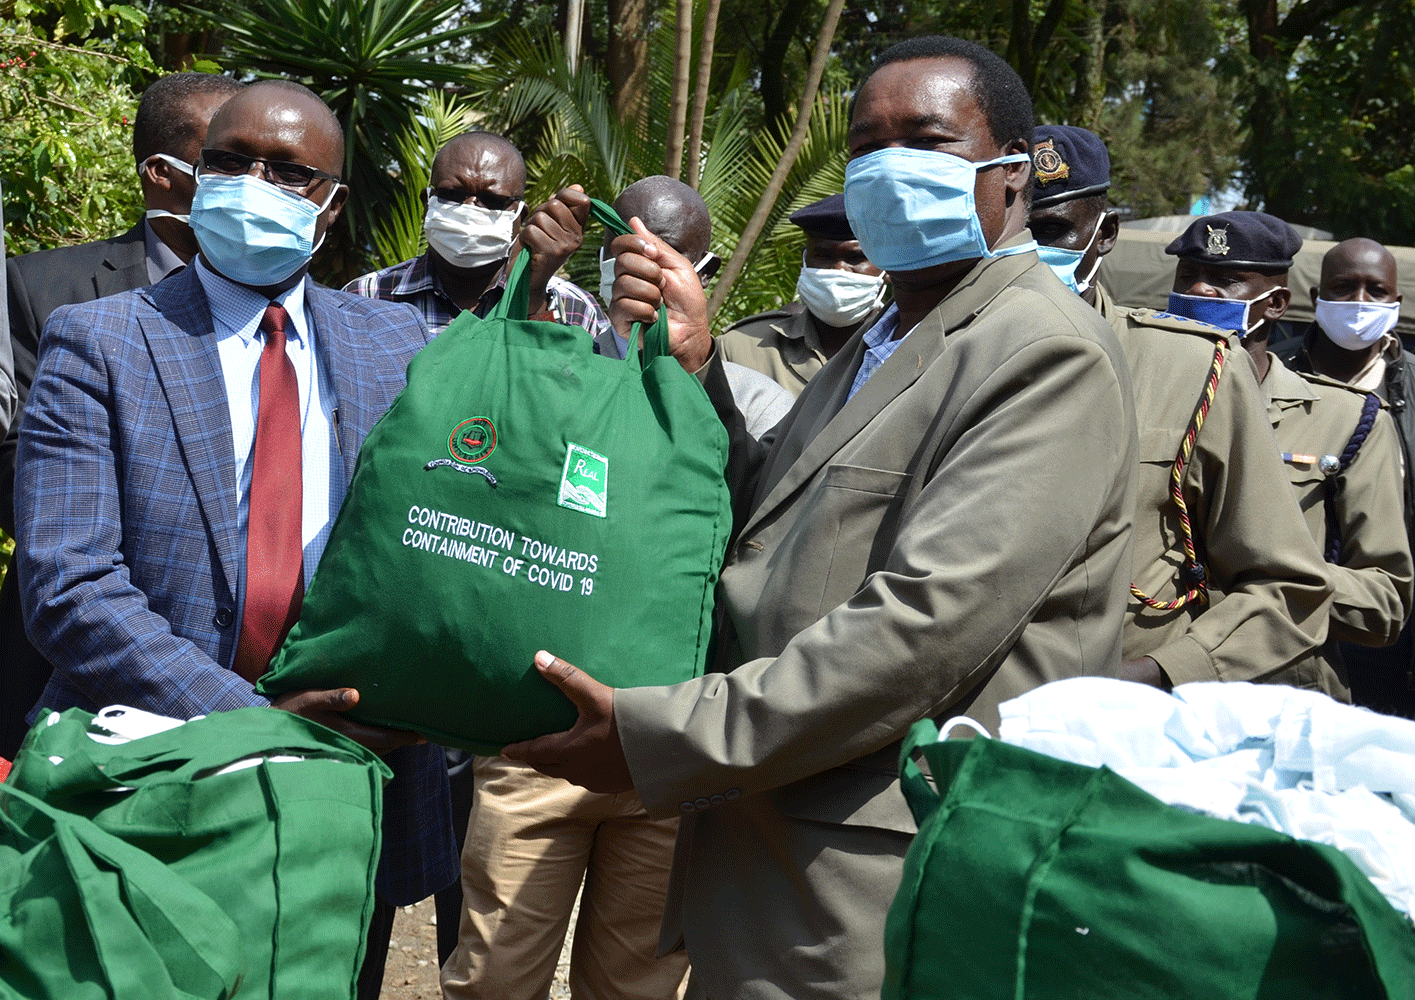 The fight against spread of COVID 19 received a major boost after Moi University in conjunction with Rivatex East Africa donated 3000 face masks and umbrellas to Uasin Gishu County Police officers. The exercise which took place today at Eldoret Central police station is part of the ongoing Corporate Social Responsibility (CSR).